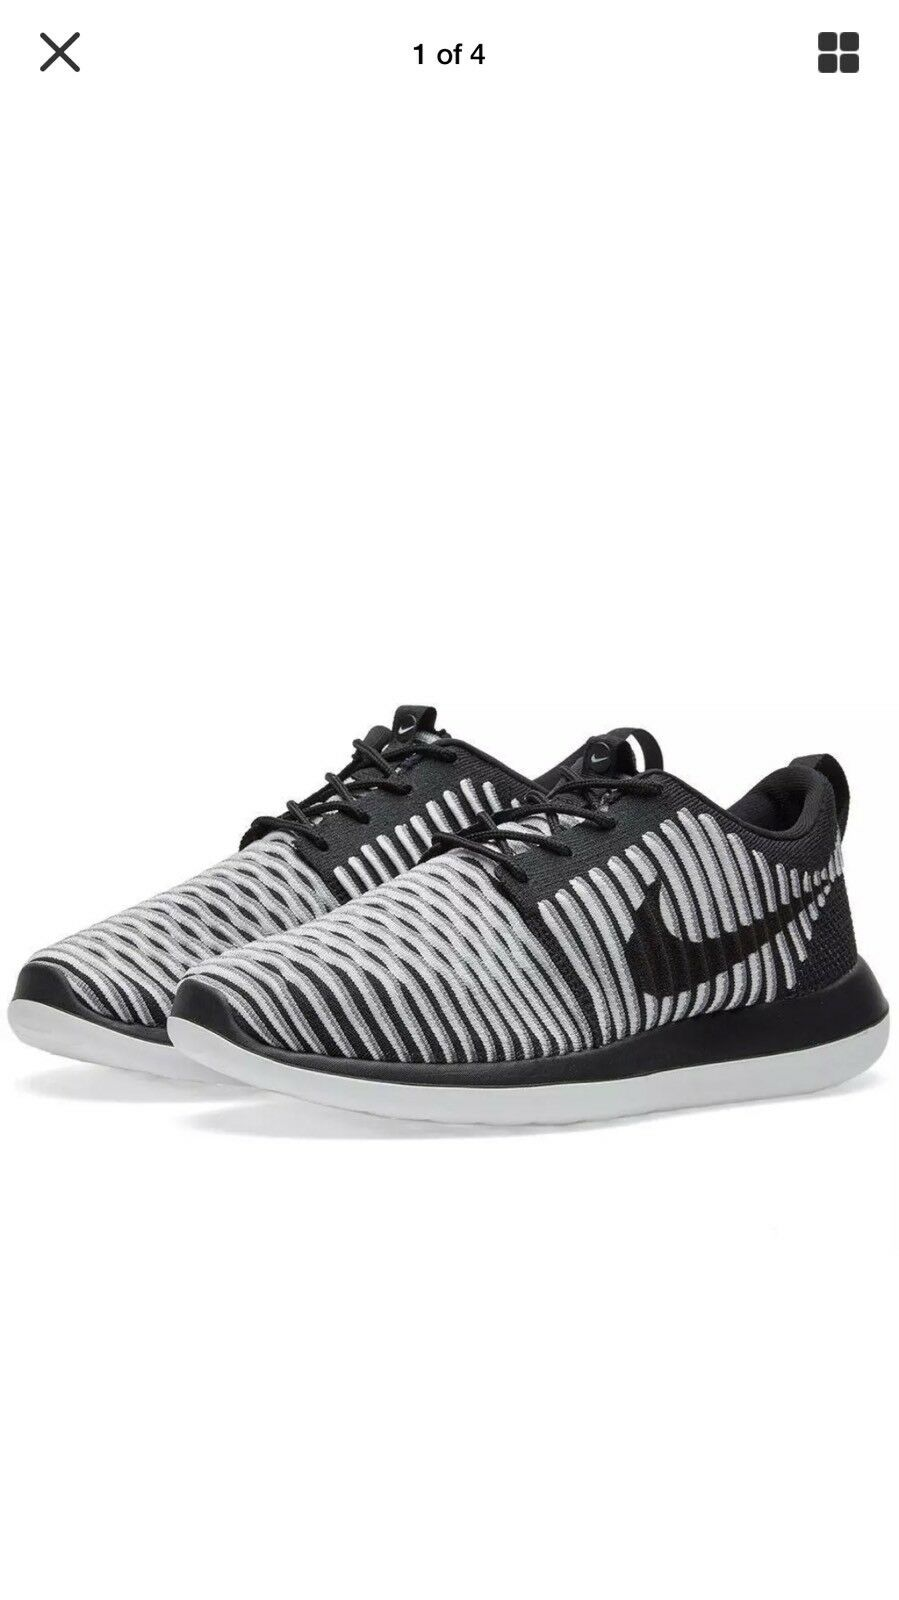 NIKE ROSHE TWO FLYKNIT Schuhes Trainers Sneakers SIZE 7UK Eur41 -